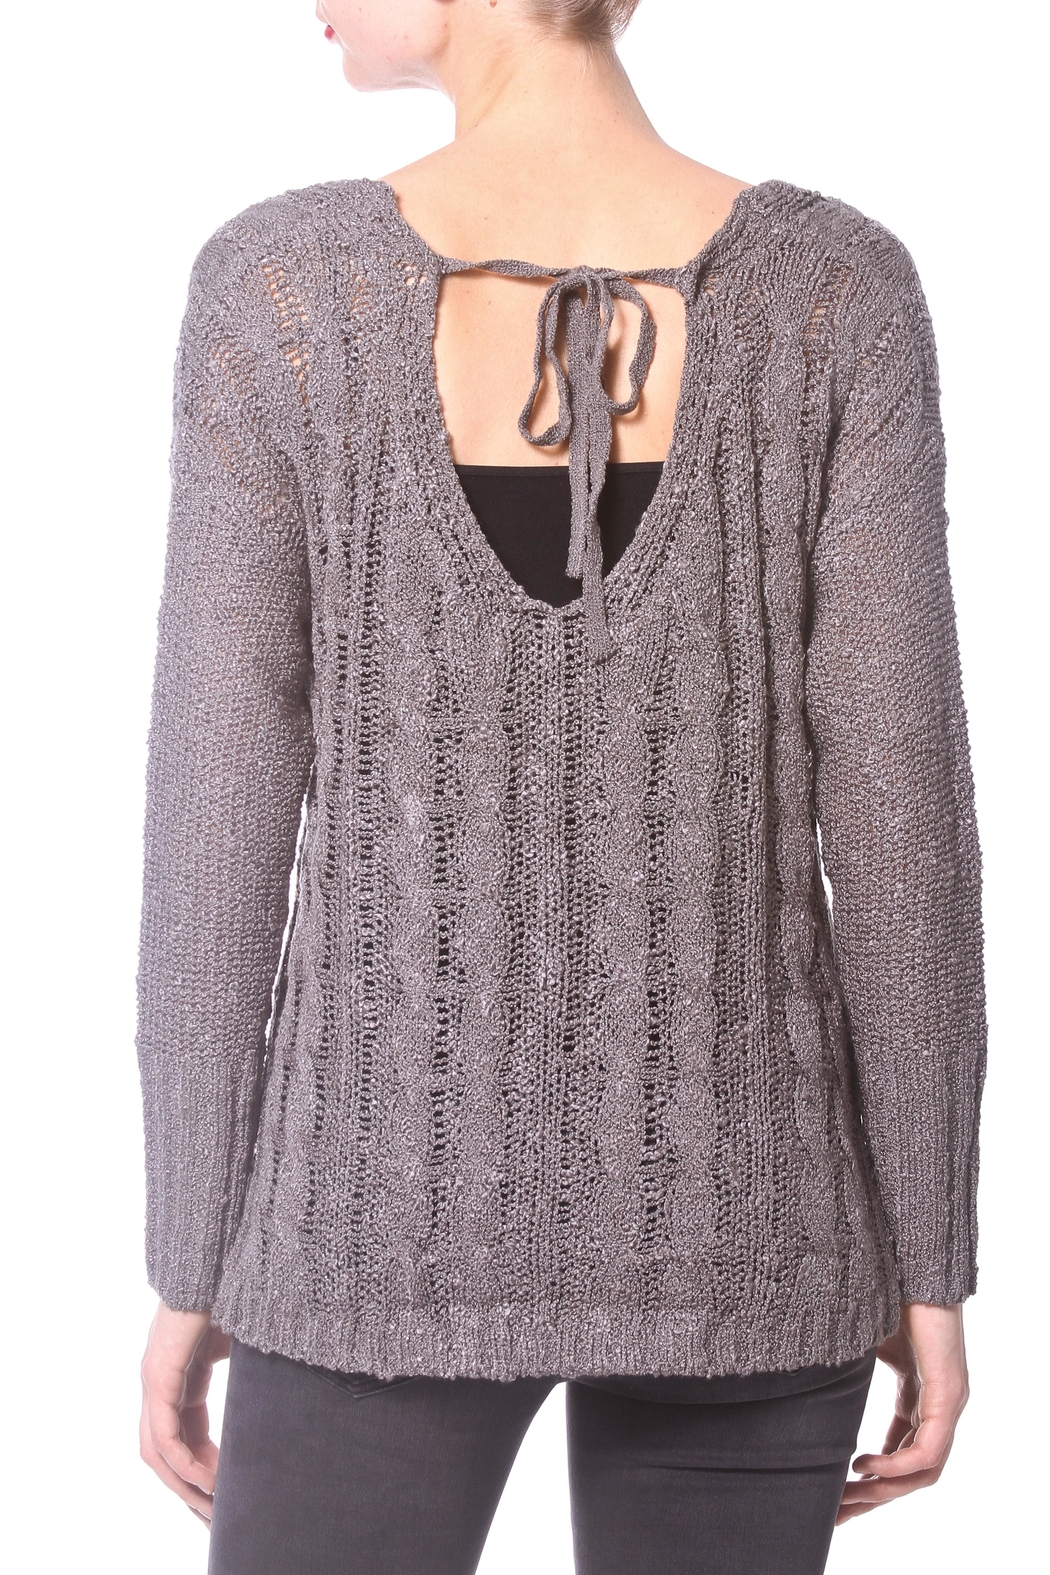 Madonna & Co Wrap Reversible Sweater - Side Cropped Image